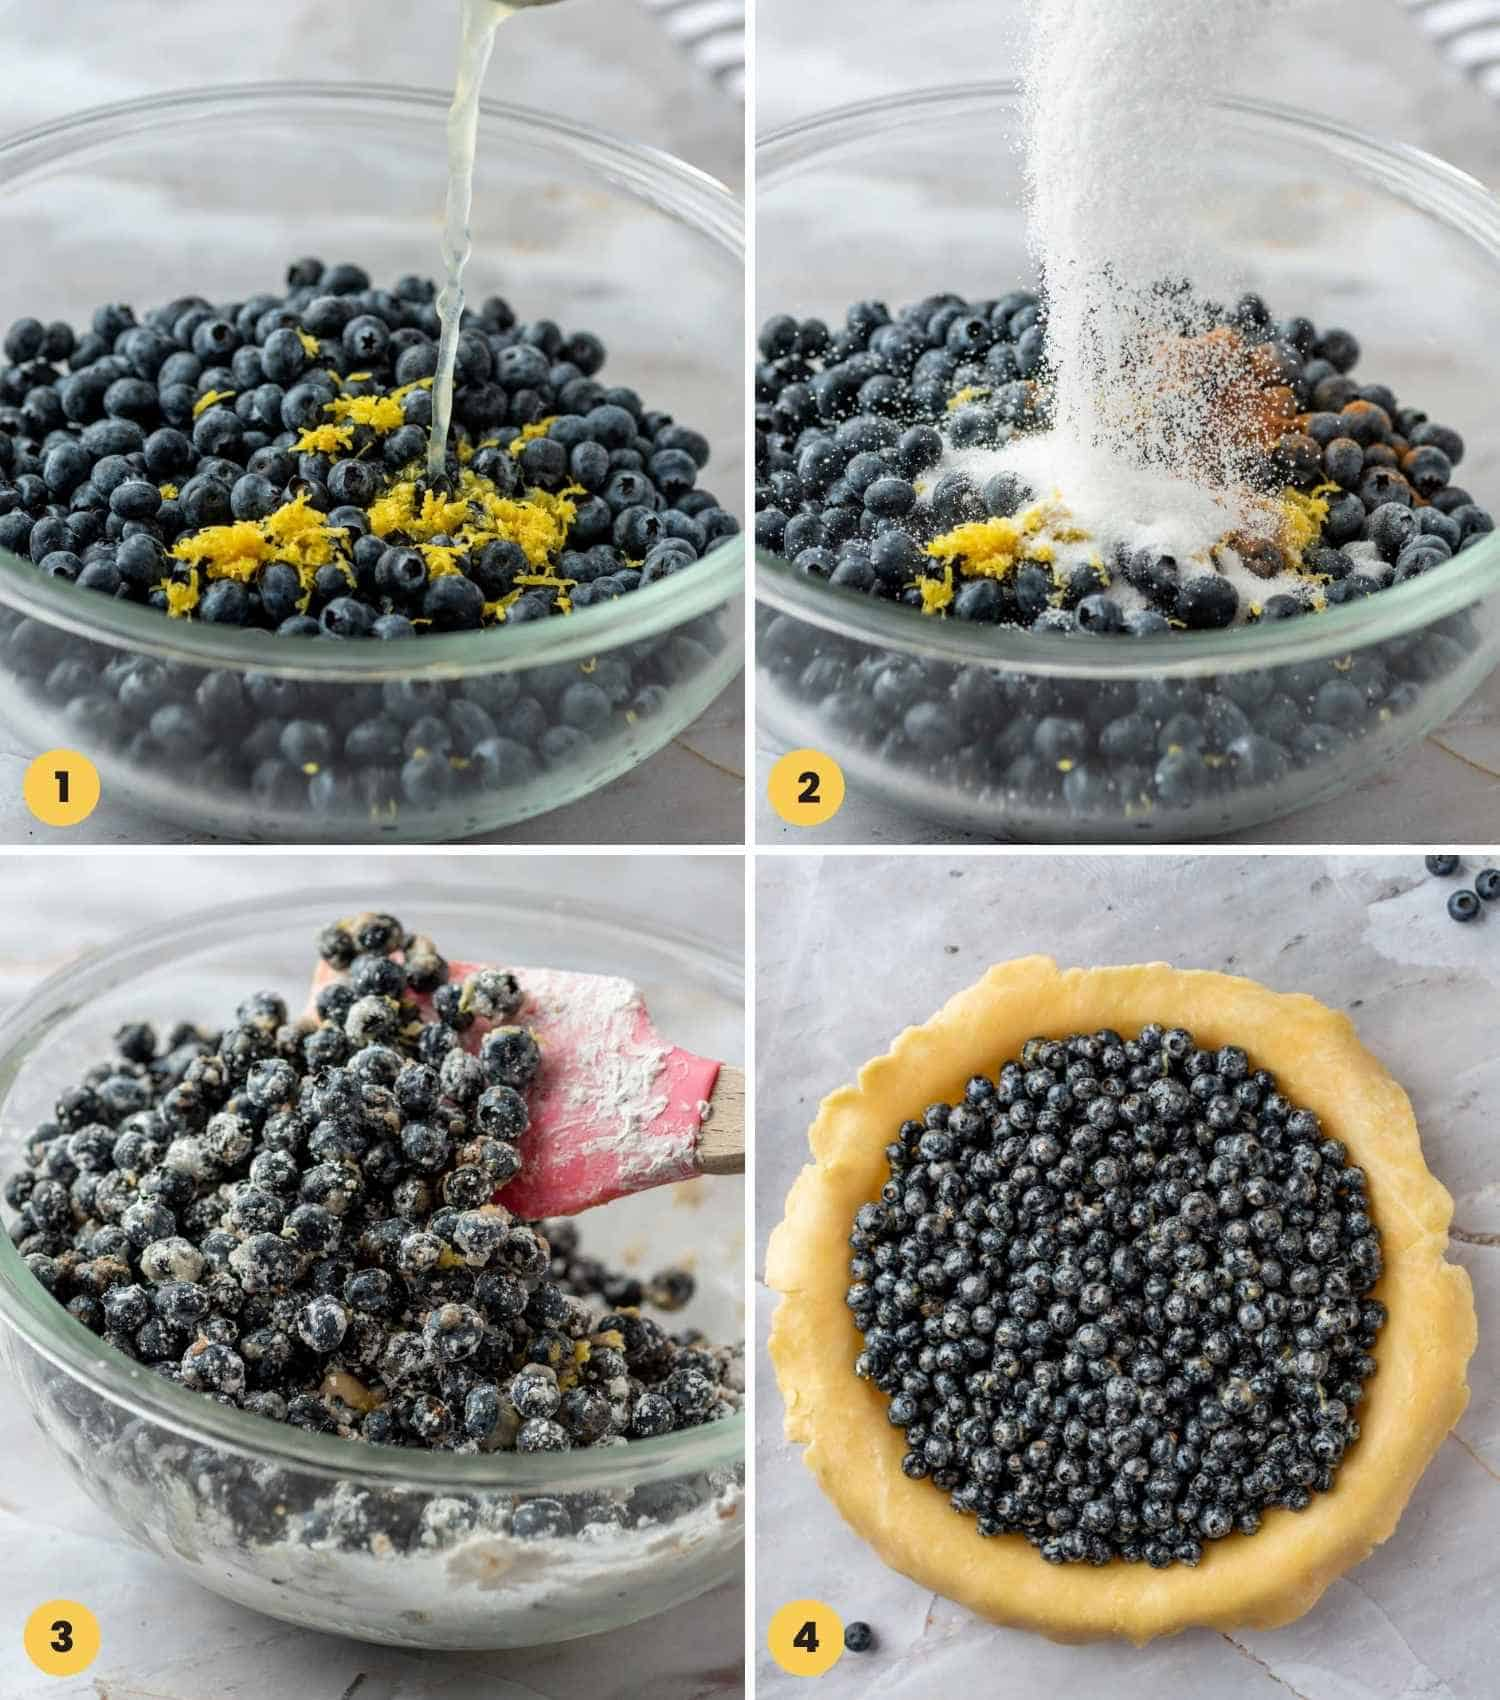 Collage with 4 images showing to prepare blueberry pie filling